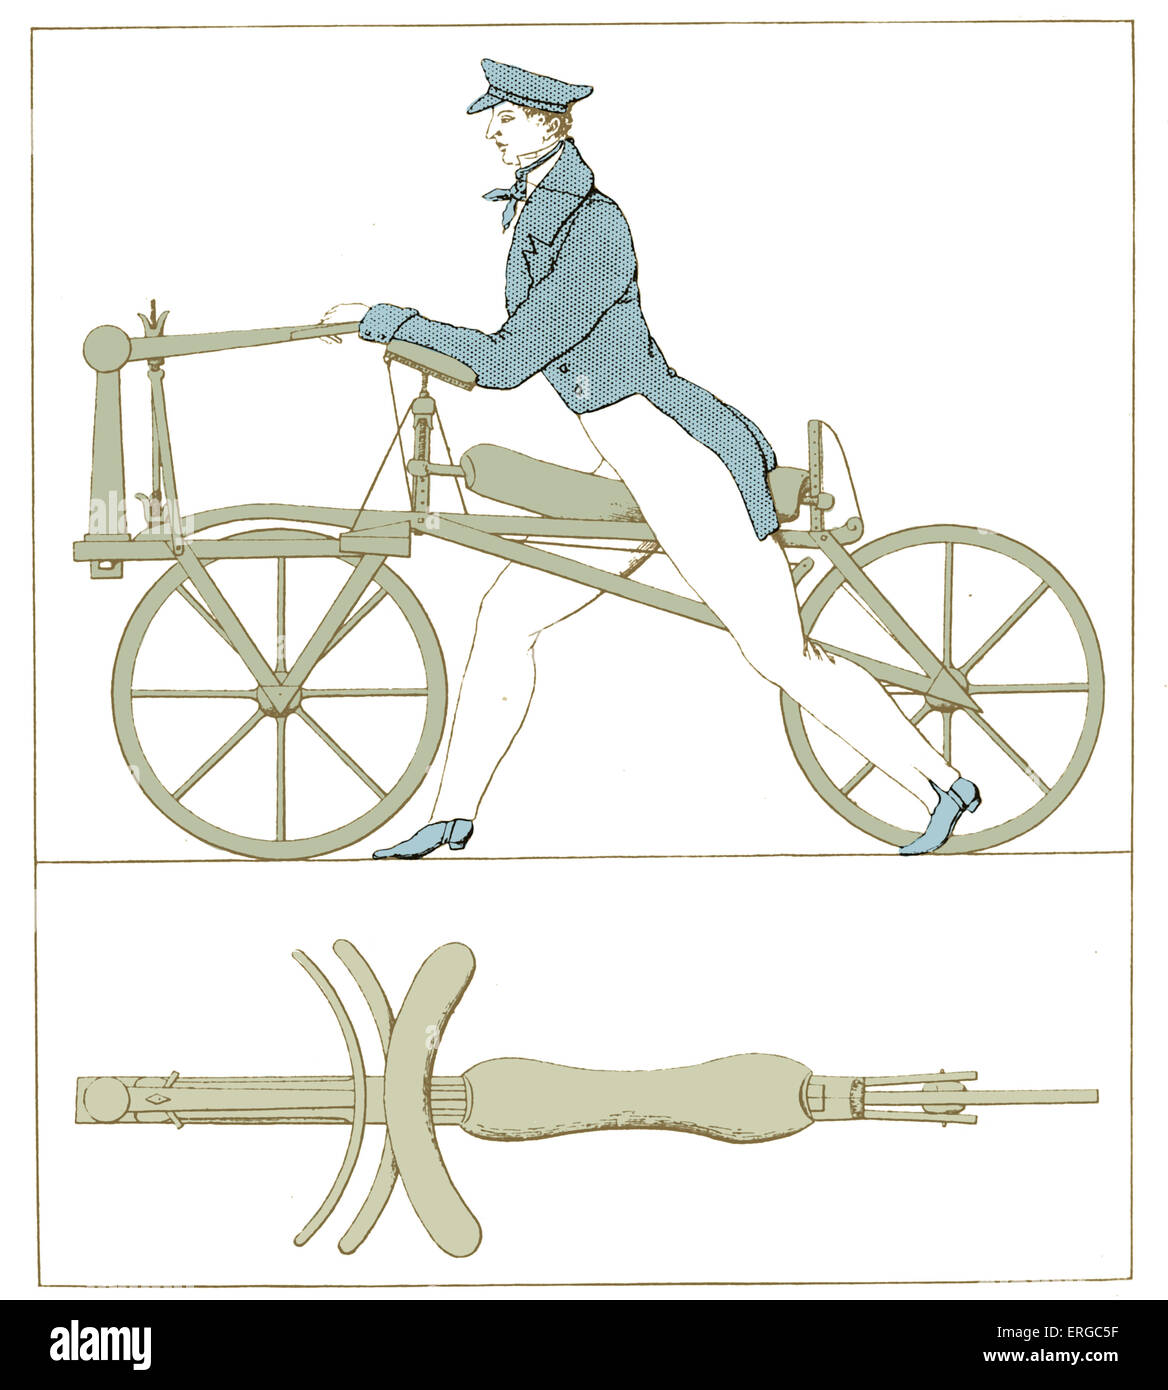 First dandy horse or hobby horse (French: draisienne or draisine or velocipede), two-wheeled man-powered vehicle - Stock Image